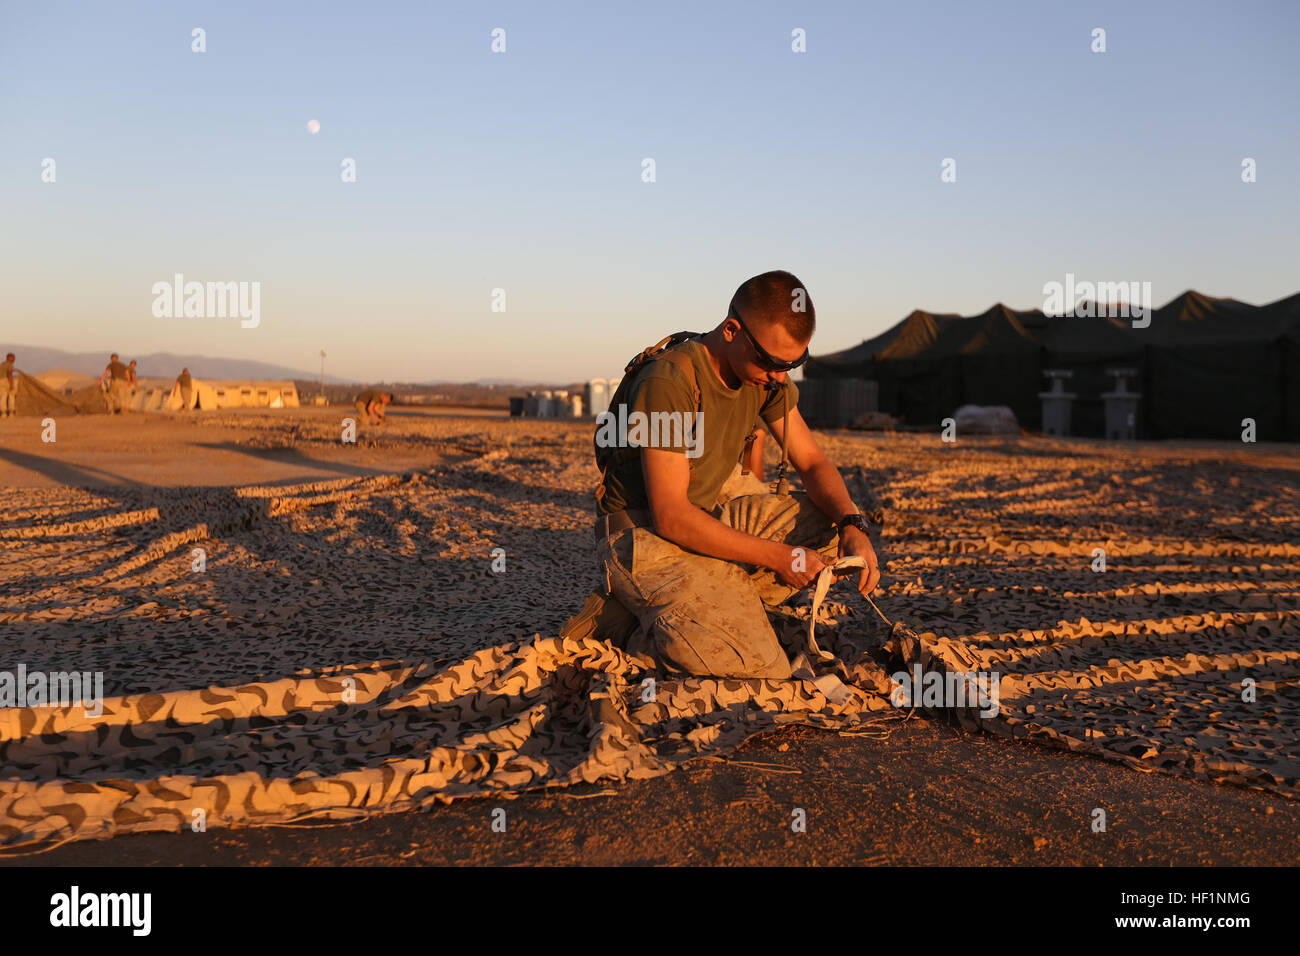 U.S. Marine Lance Cpl. Eric Trautman of Ravenna, Ohio, ties camouflage netting during a field exercise aboard Camp - Stock Image